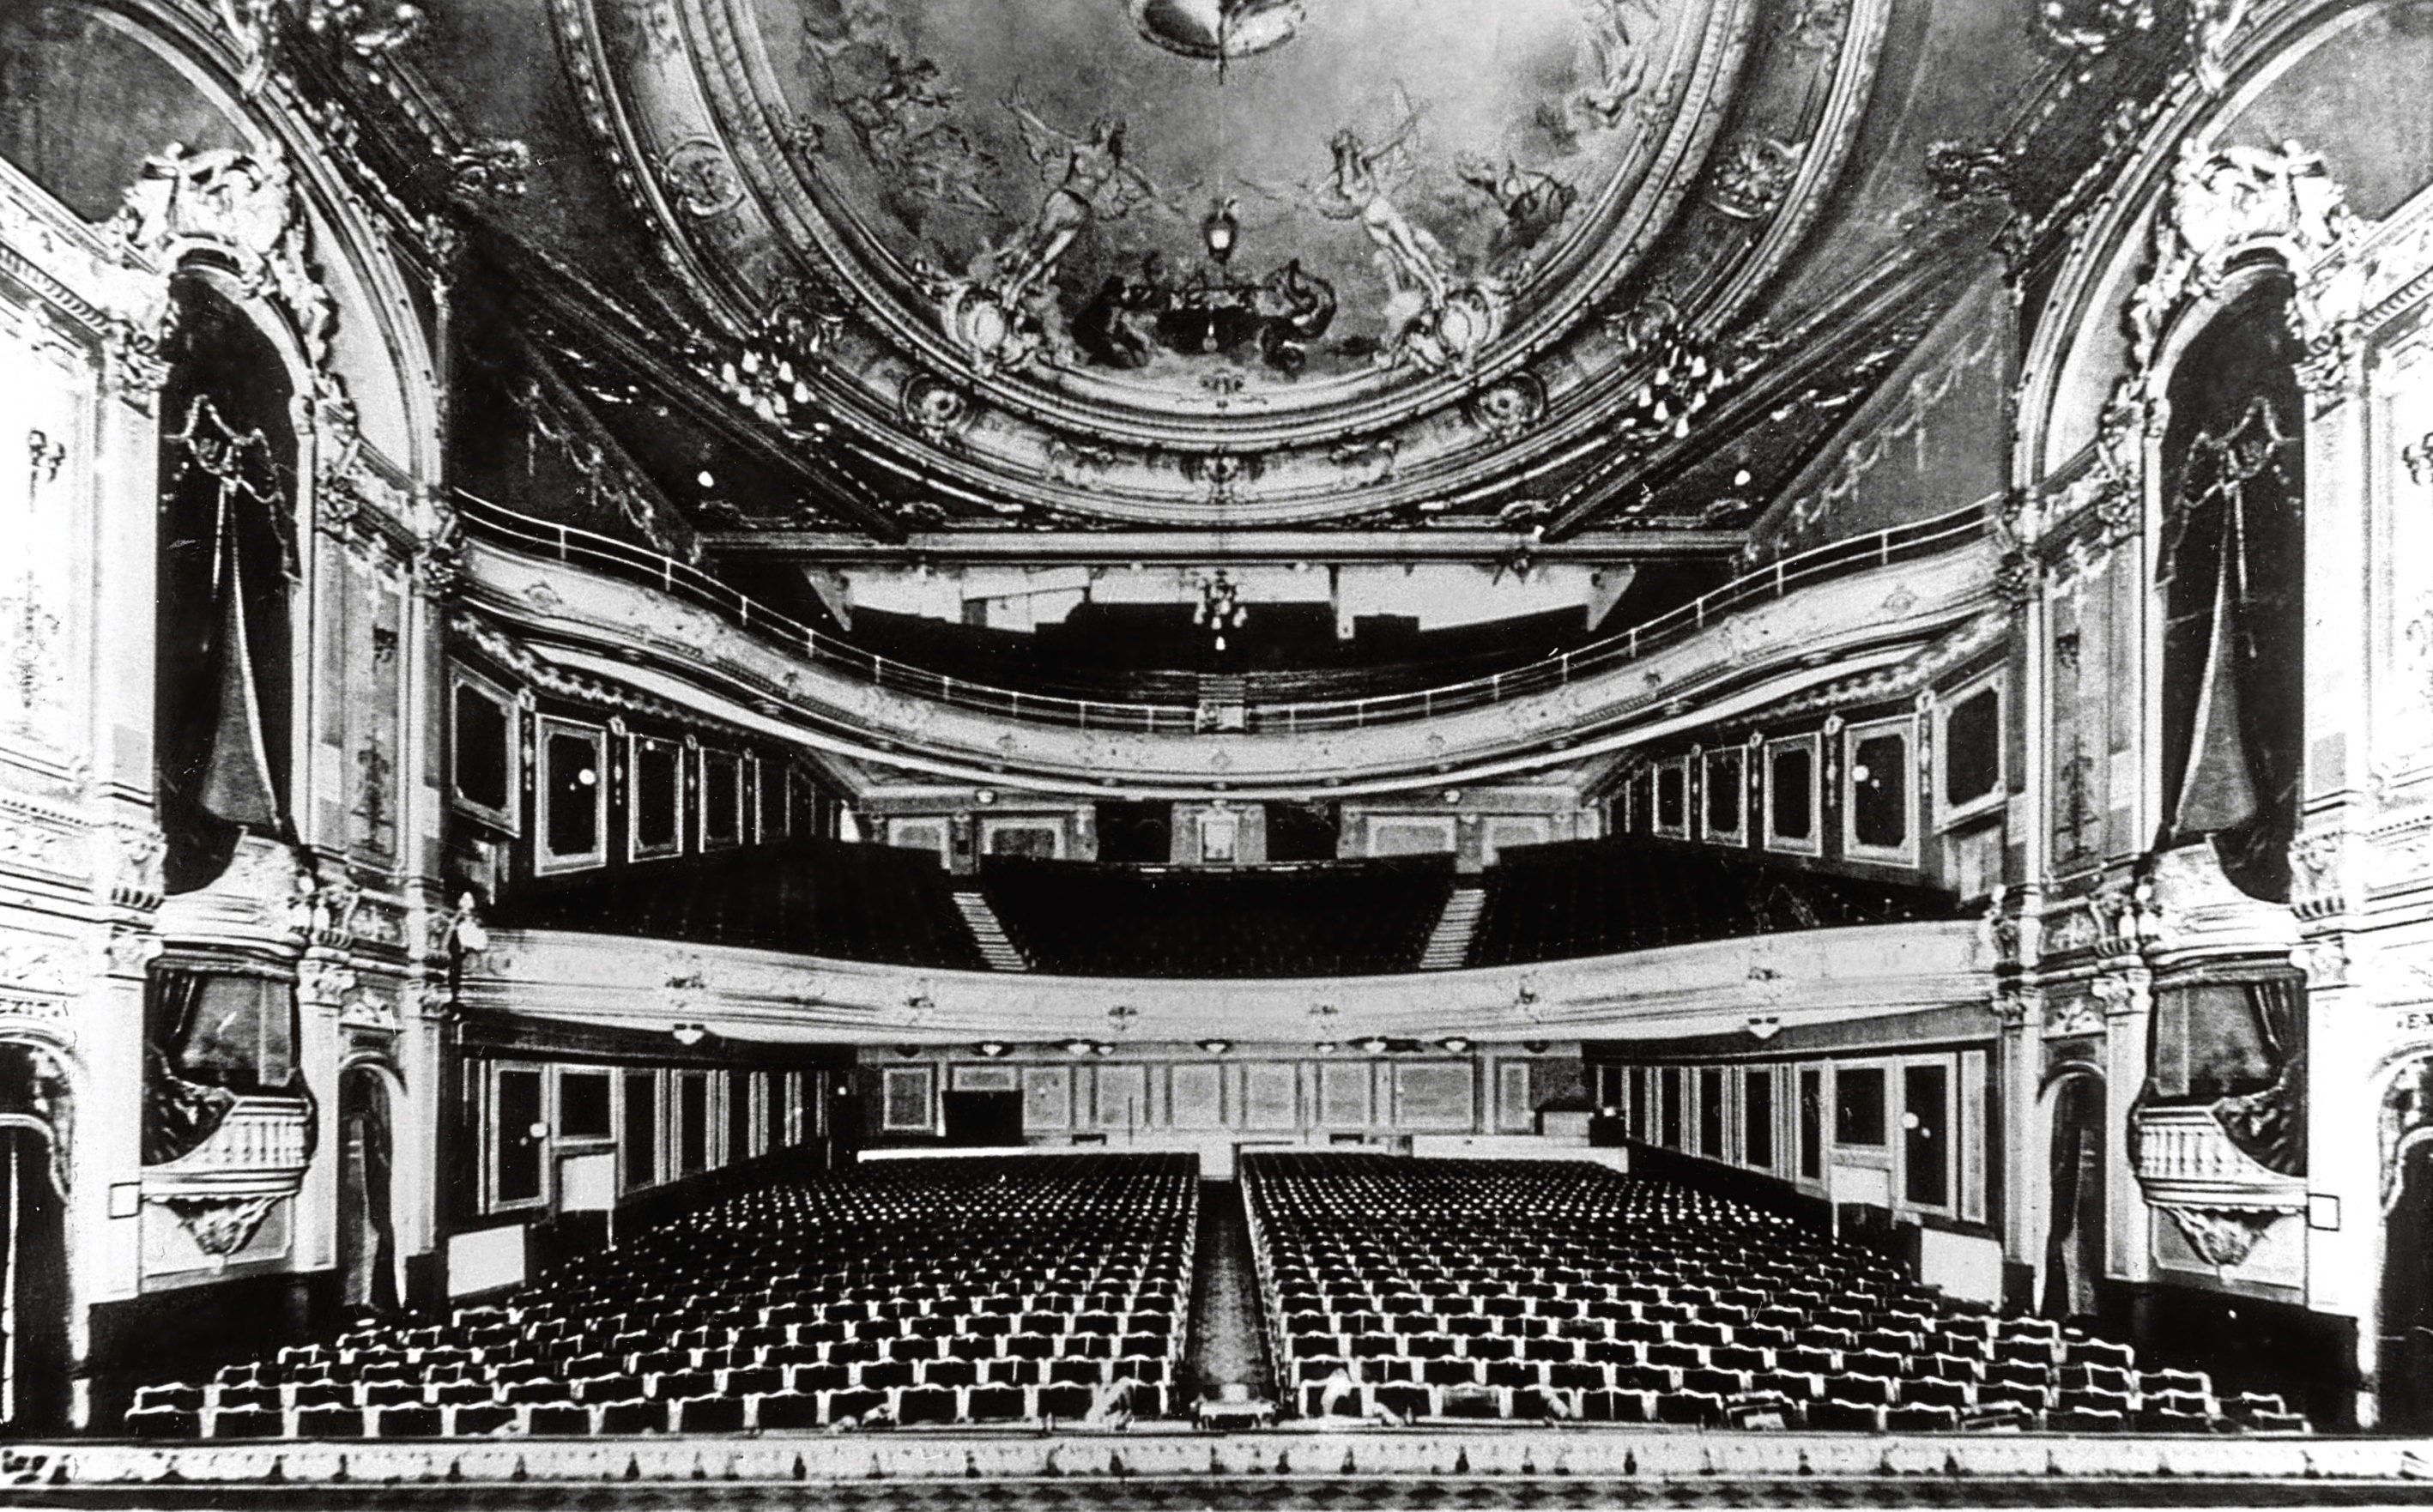 The magnificent auditorium of the King's Theatre in its heyday.